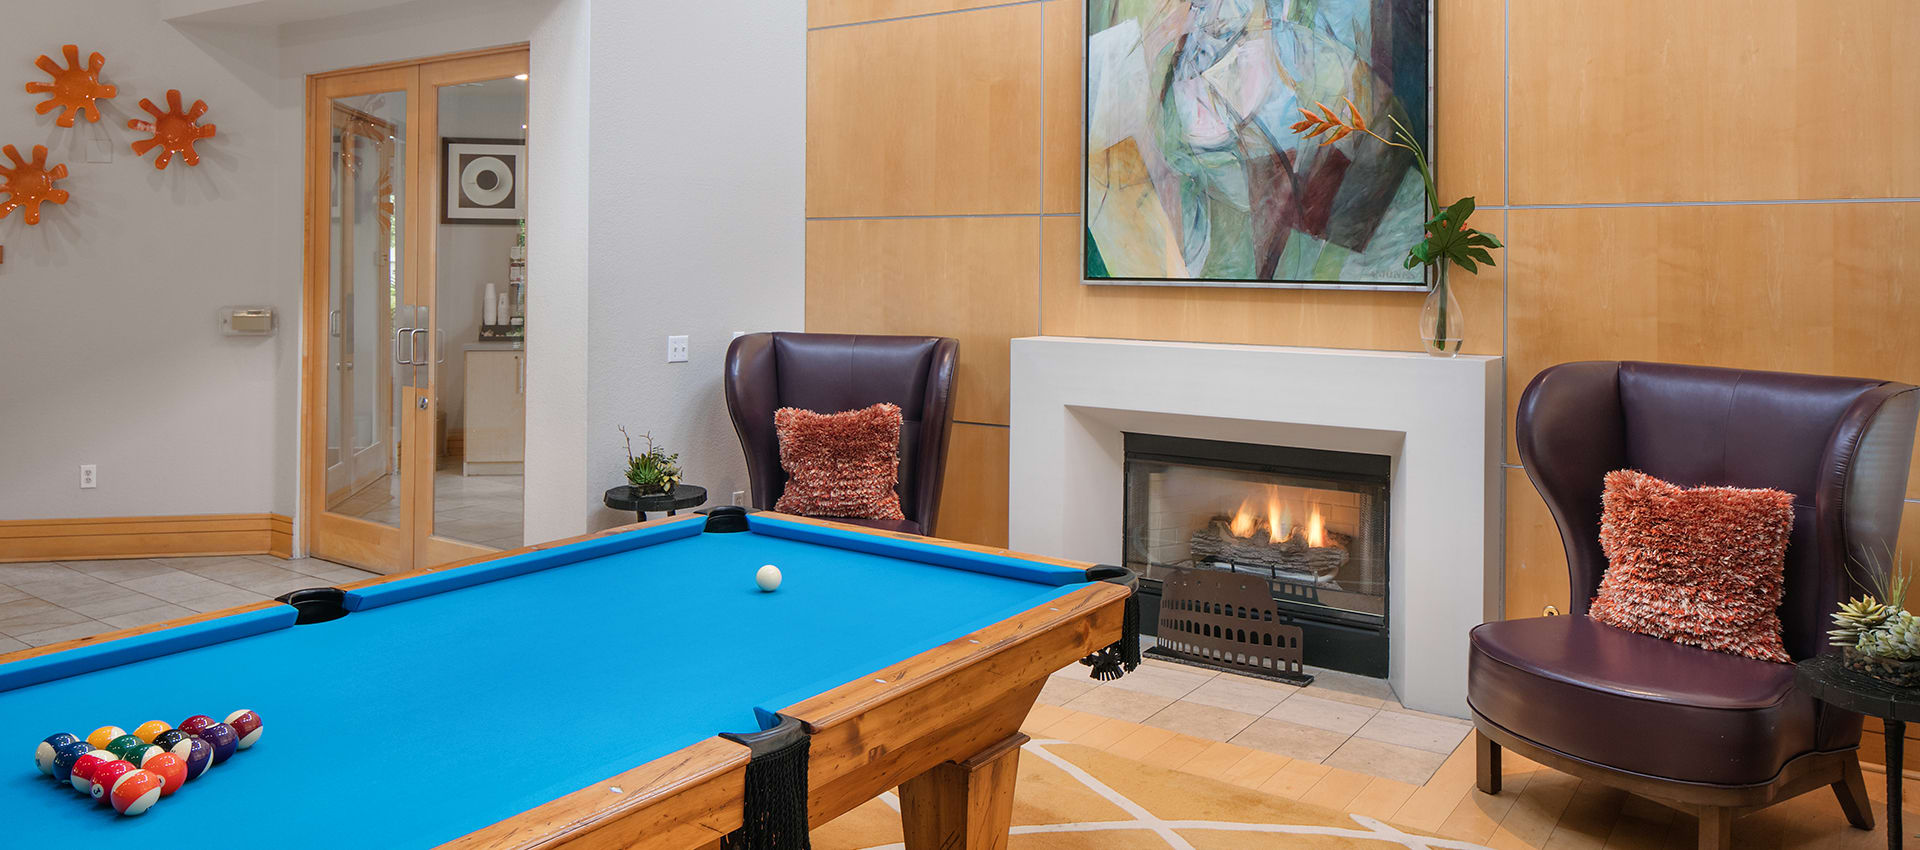 Pool table at apartments in Center Pointe Apartment Homes, Oregon